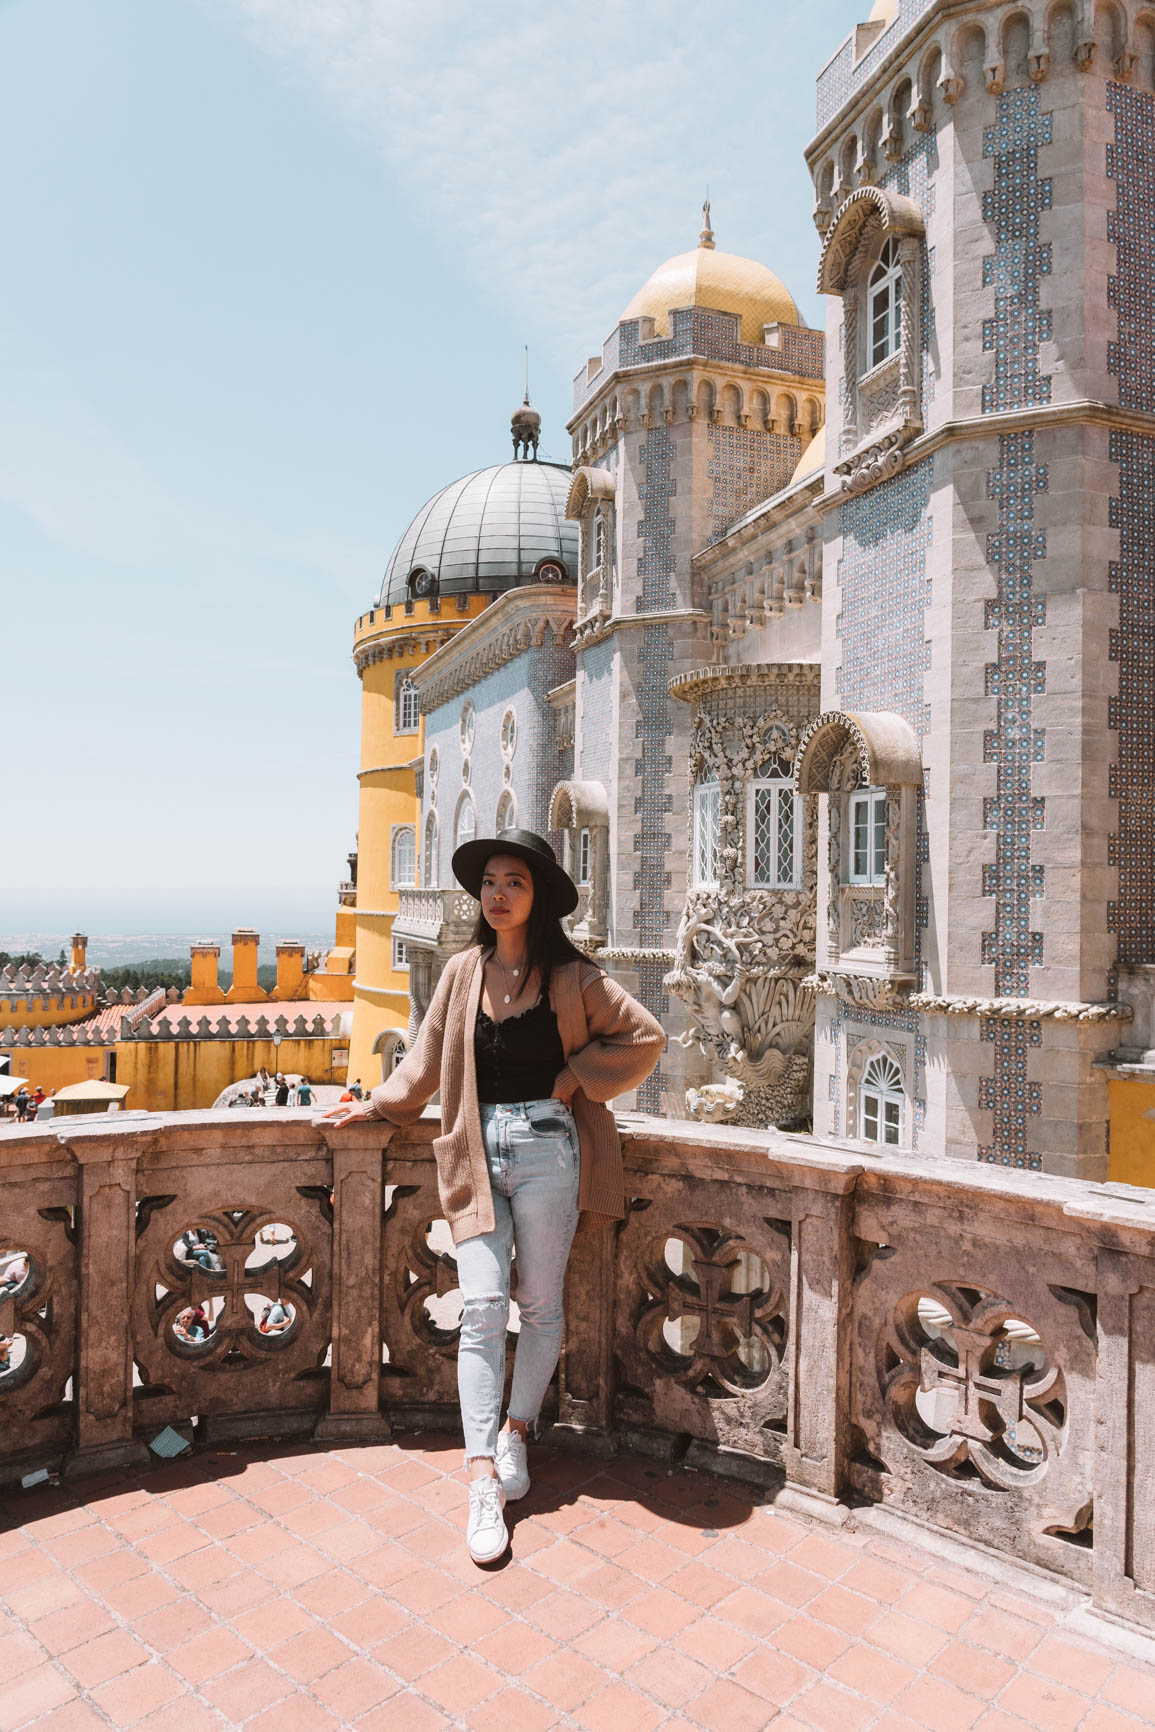 Palacio da Pena - Ultimate Guide to Visiting Sintra Portugal in a day trip from Lisbon Portugal  #Sintra #Lisbon #Portugal #Europe